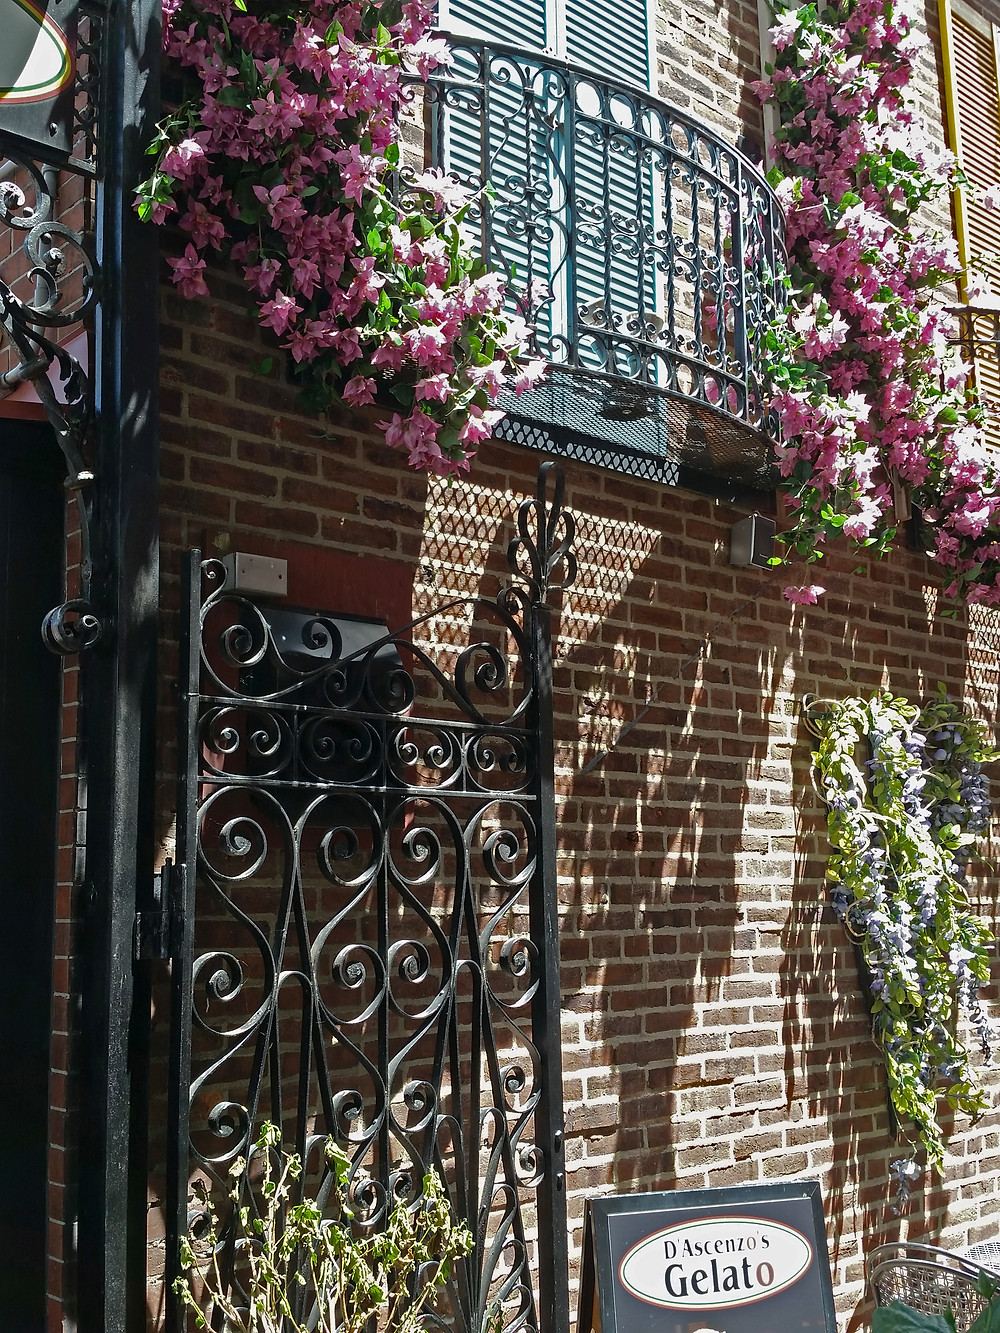 Love those colorful shutters, and that gate!